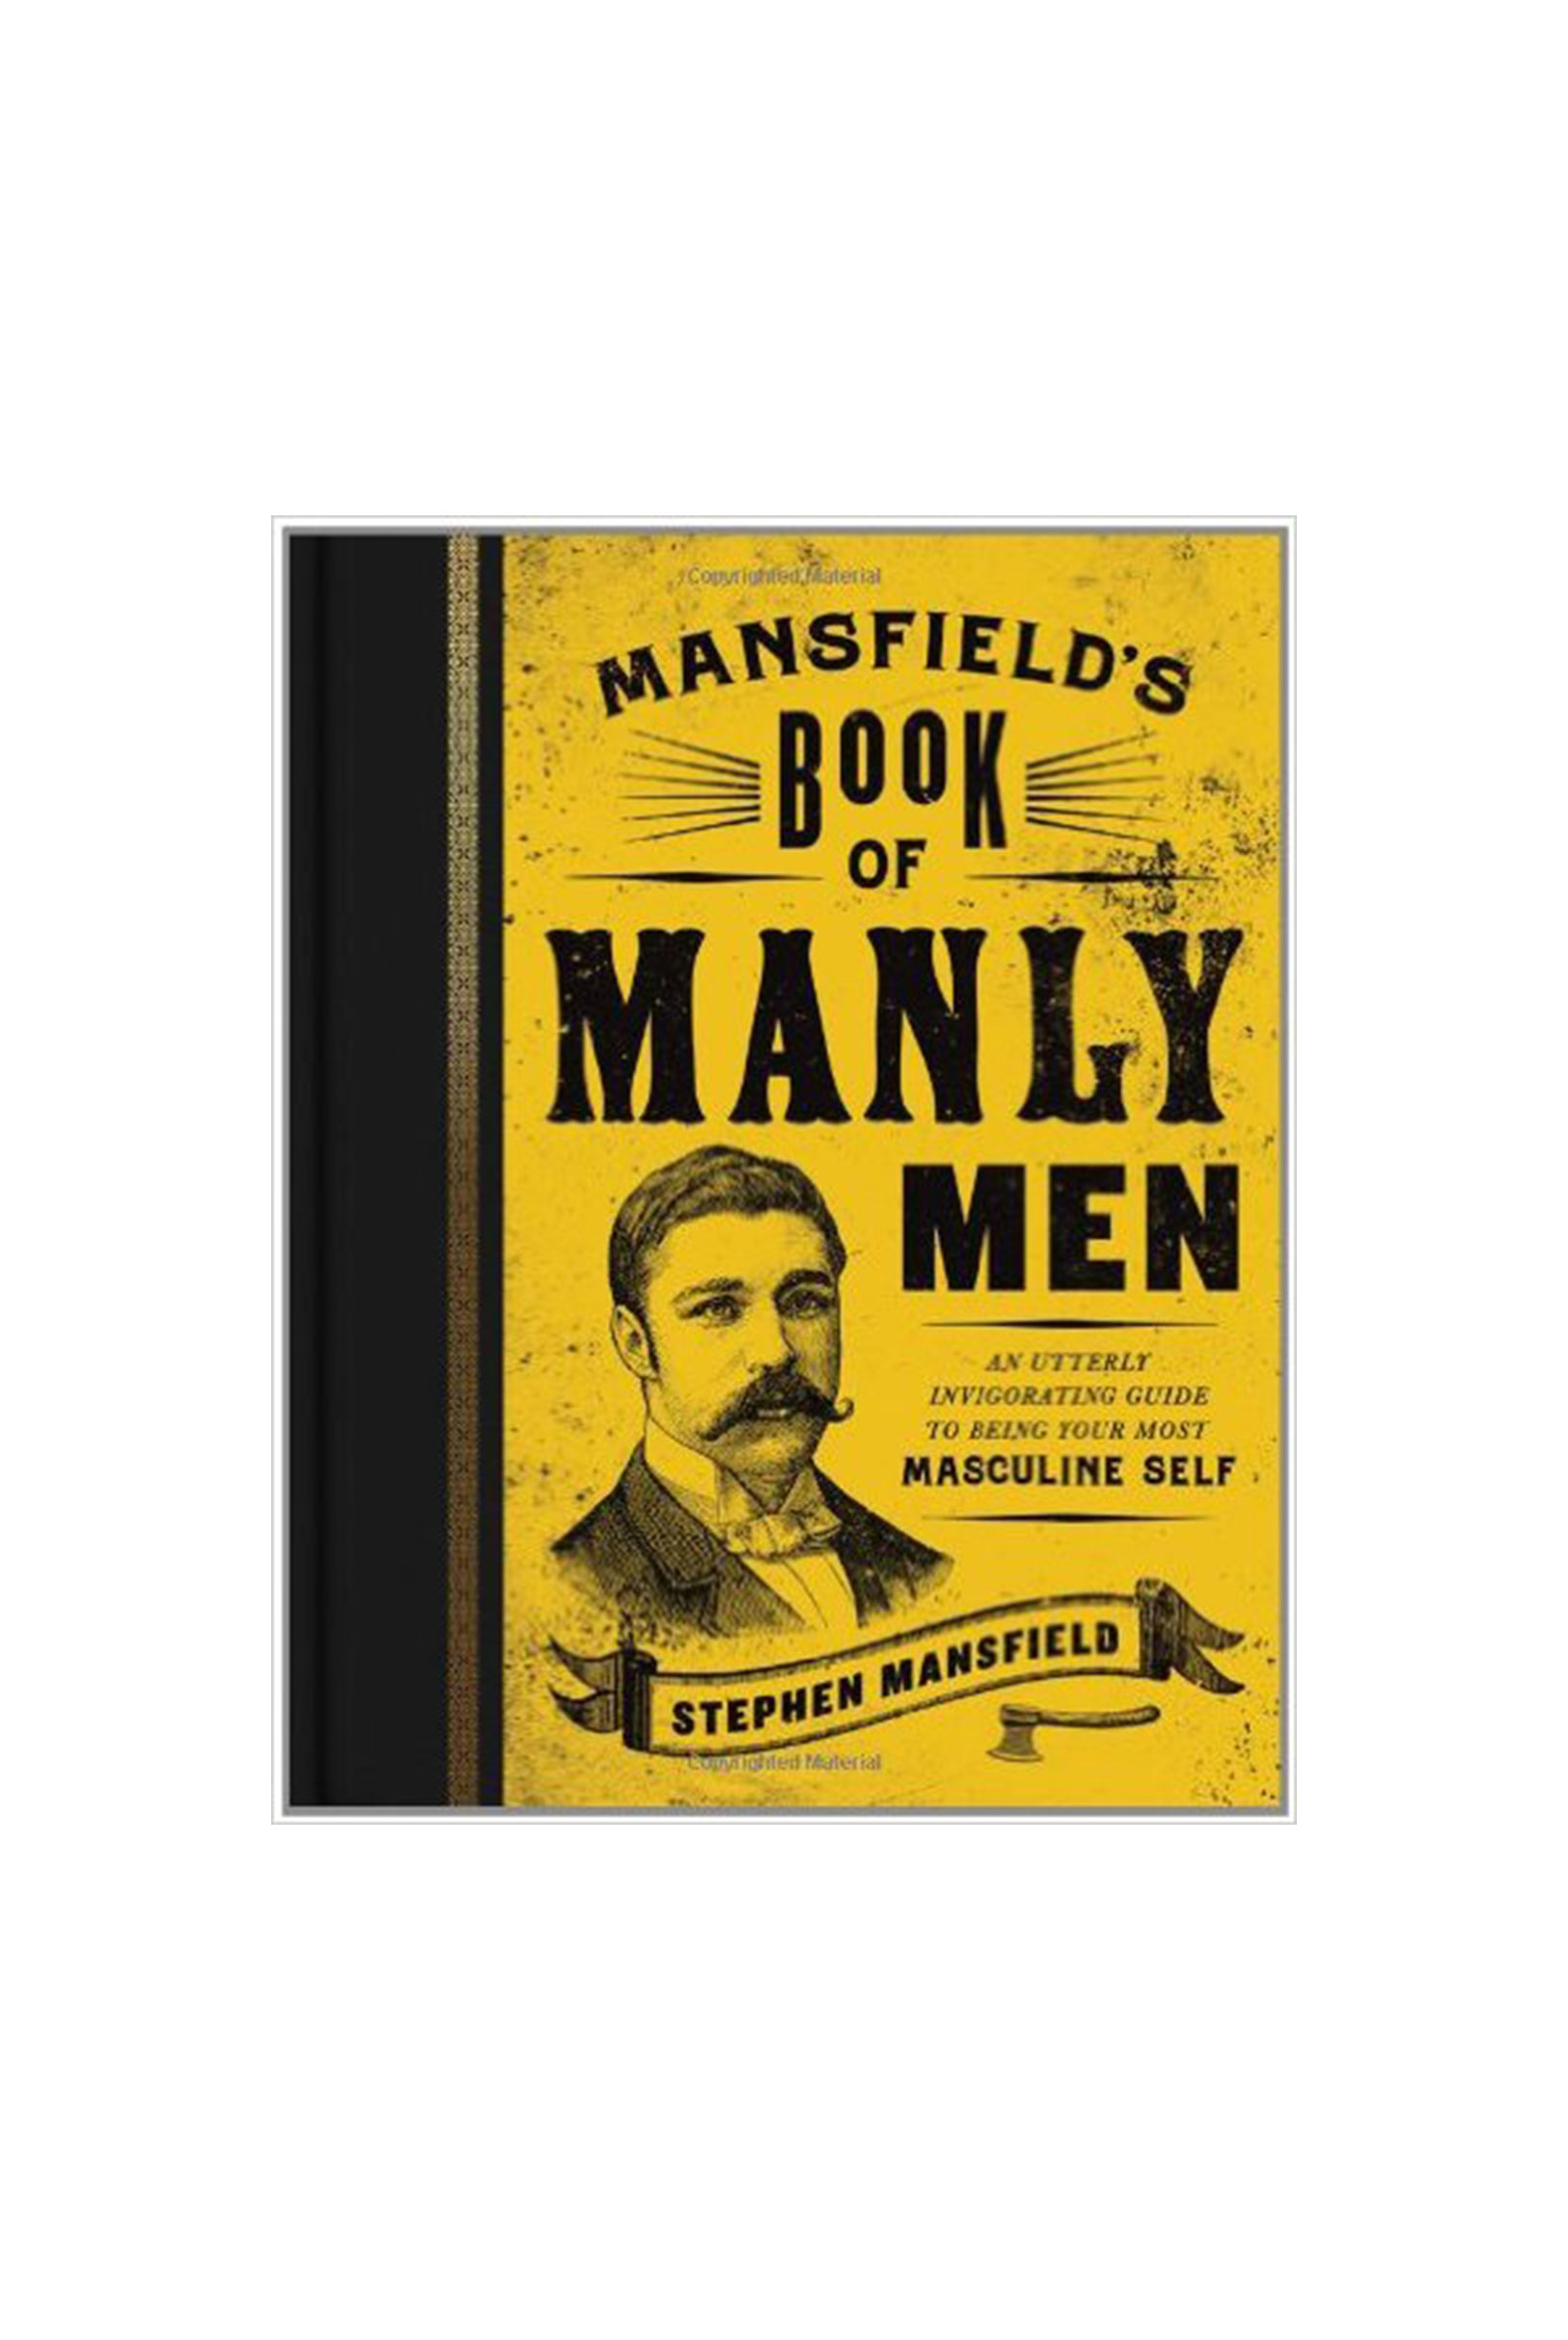 Mansfield's-Book-of-Manly-Men.jpg